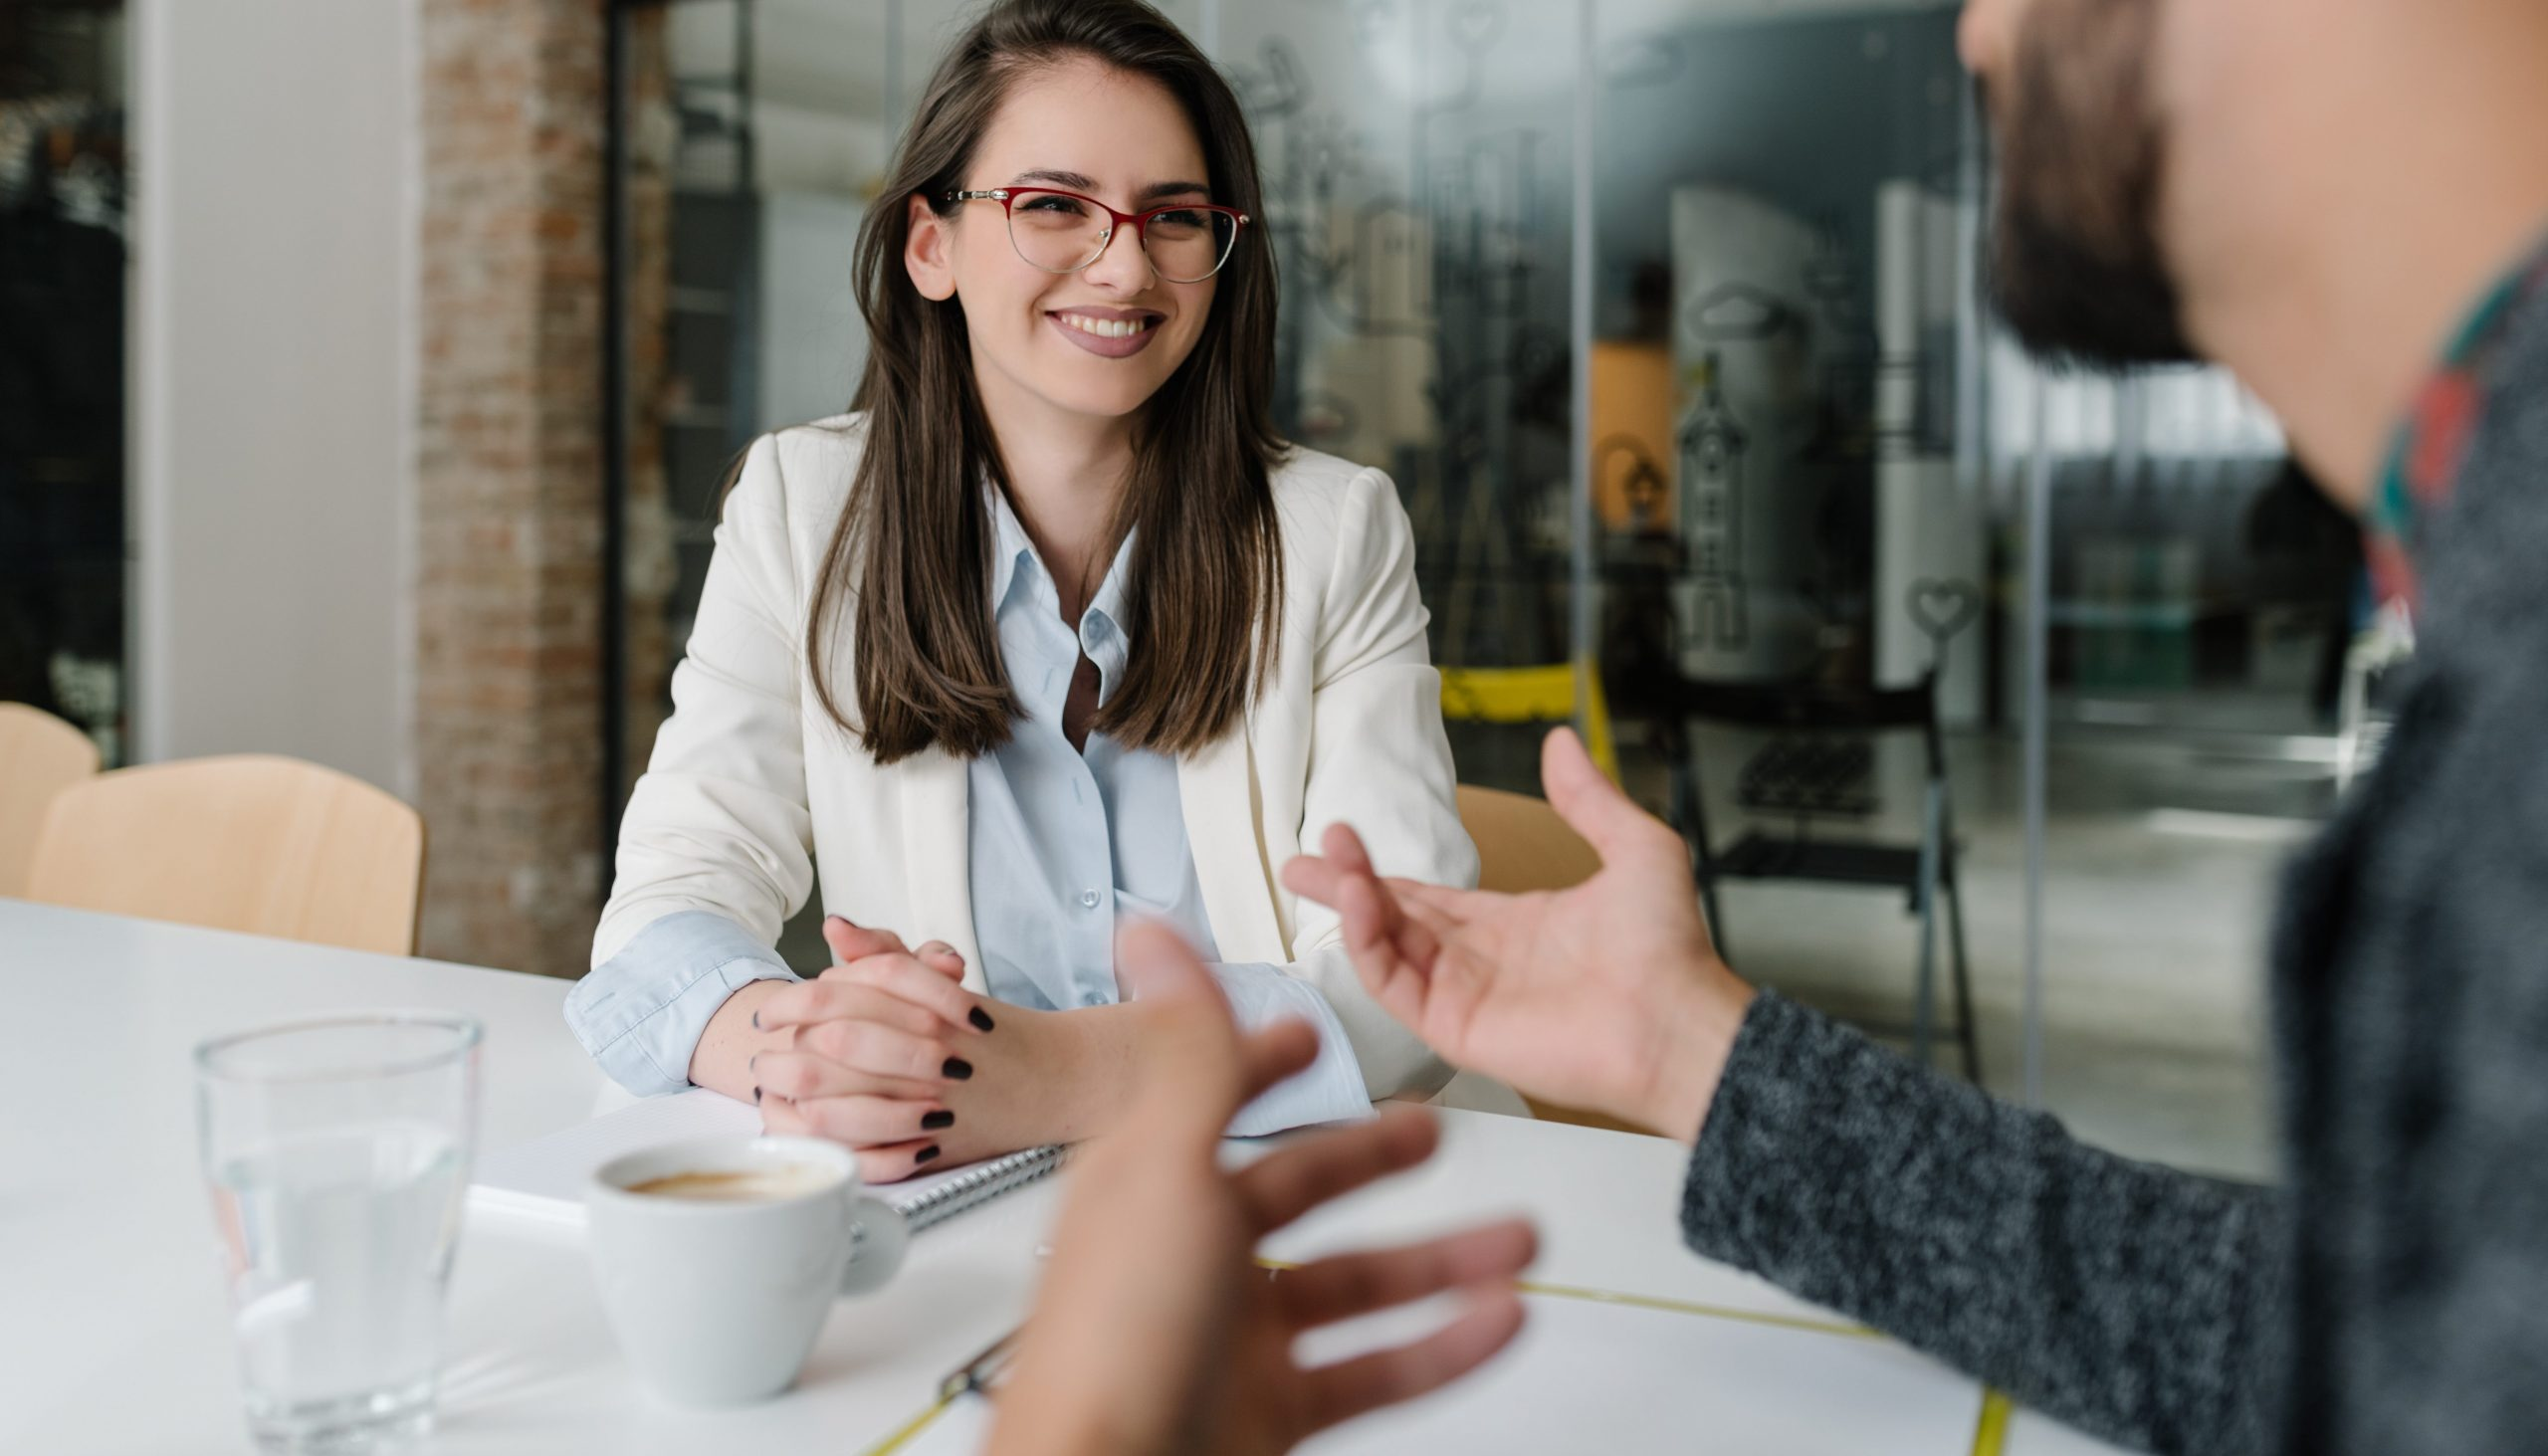 Having Positive Energy at Your Job